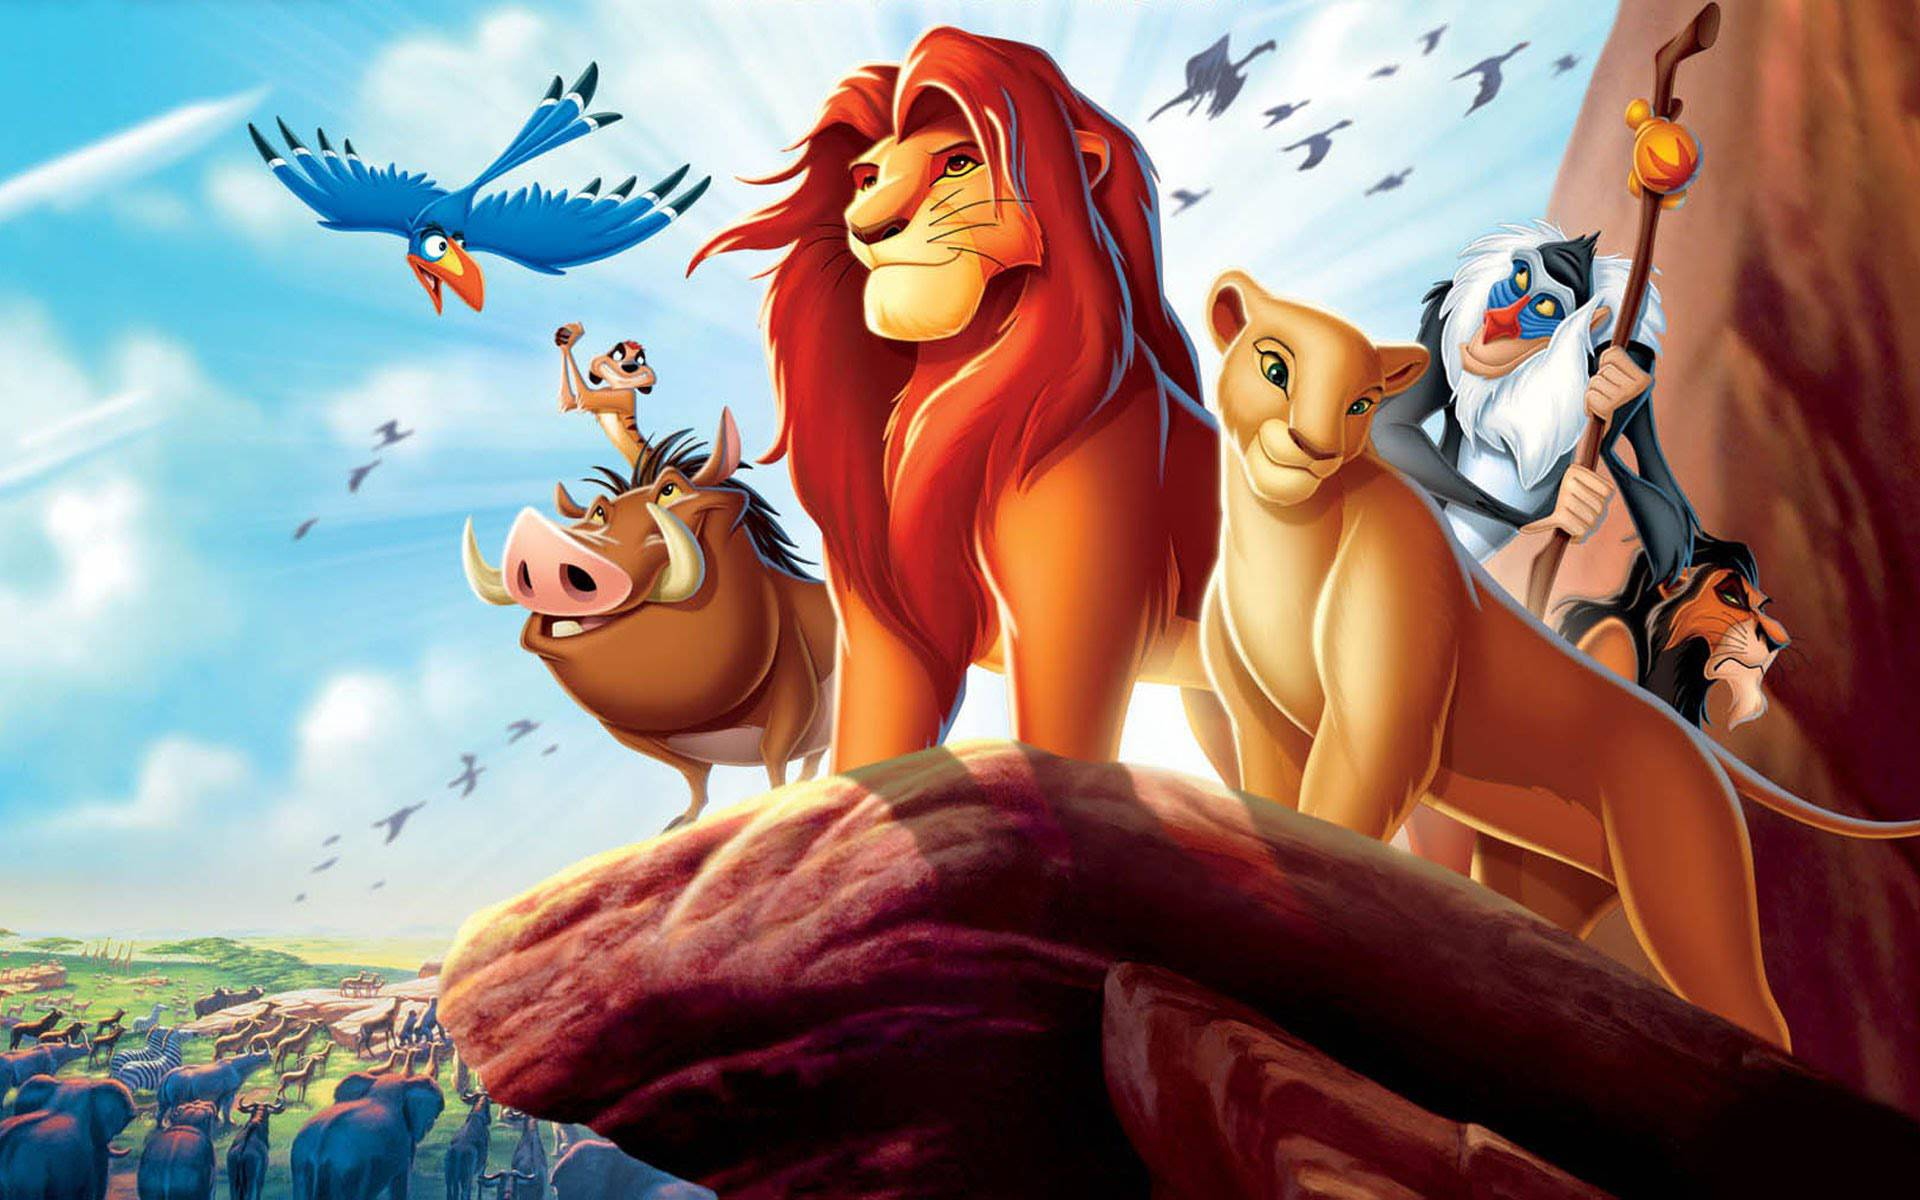 Disneys The Lion King Remake Release Date Revealed